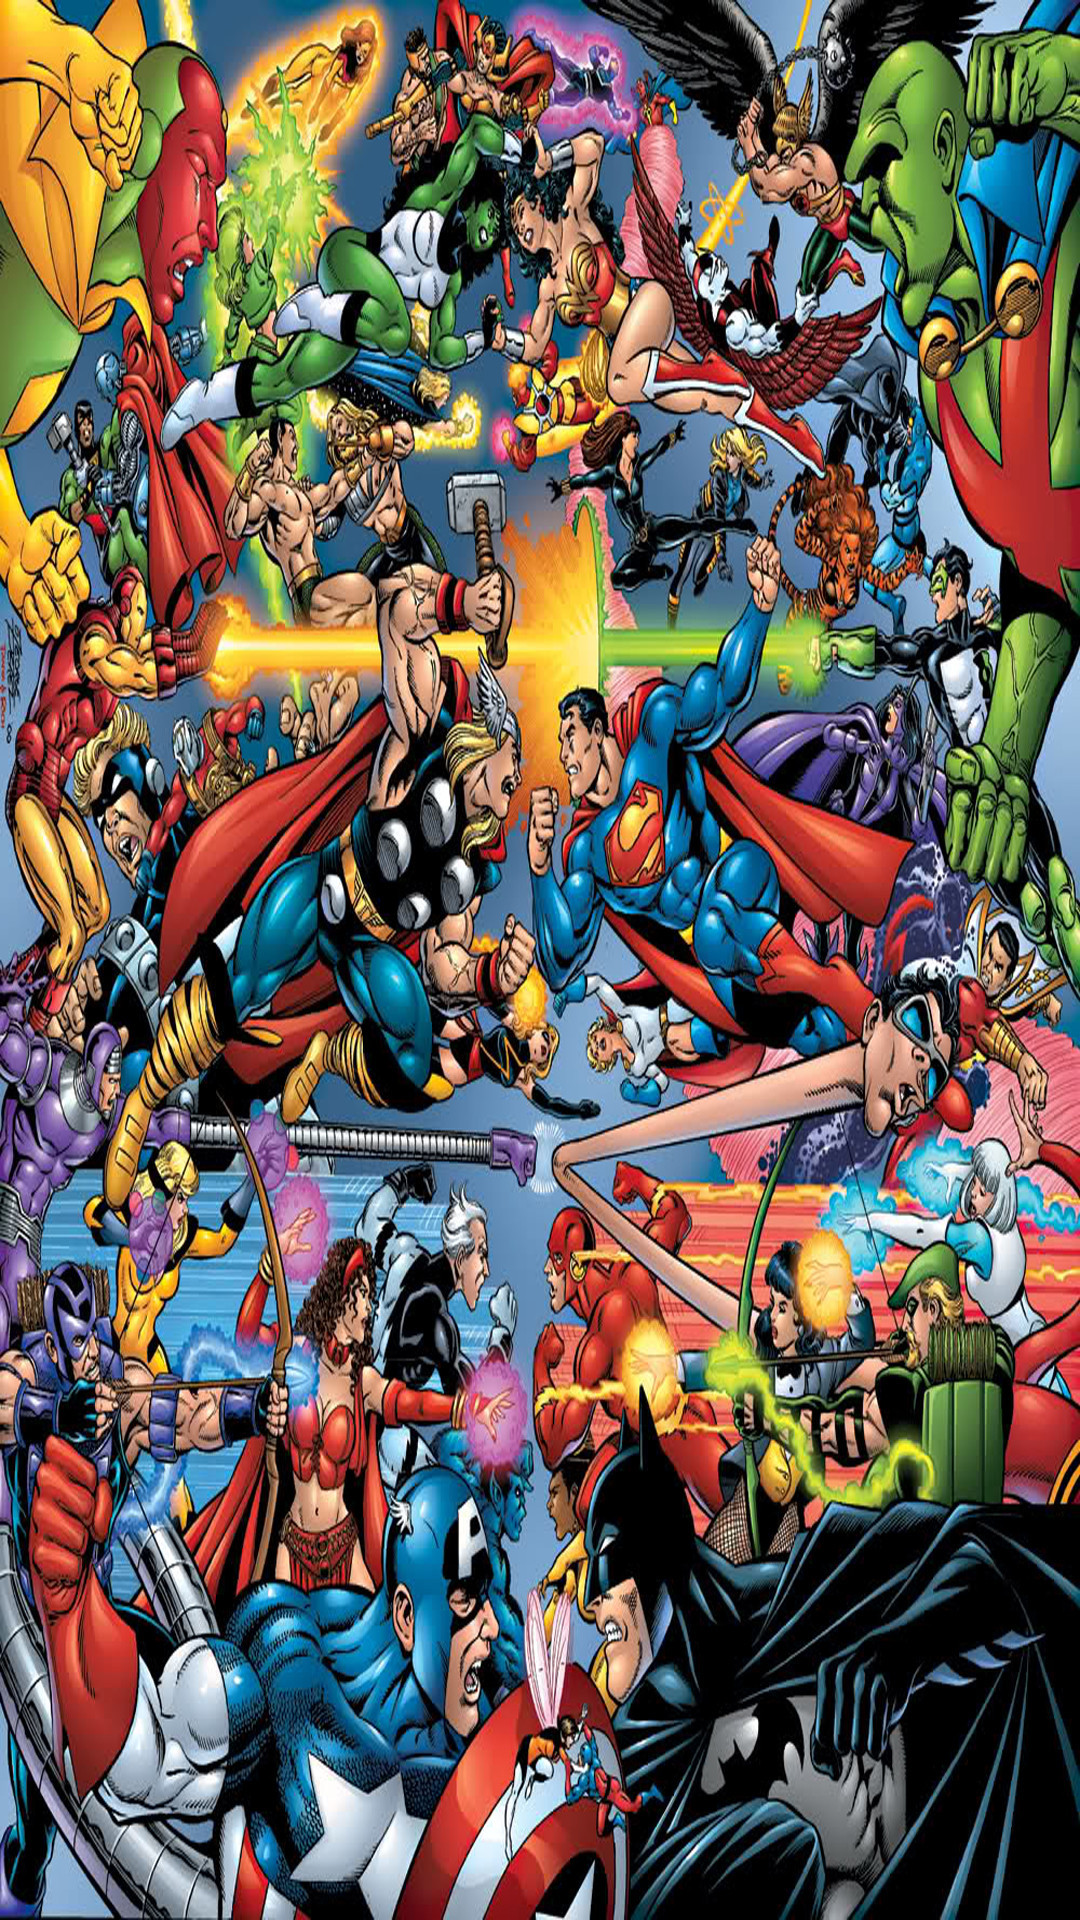 Must see Wallpaper Marvel Android Phone - 477740  Image_723164.jpg